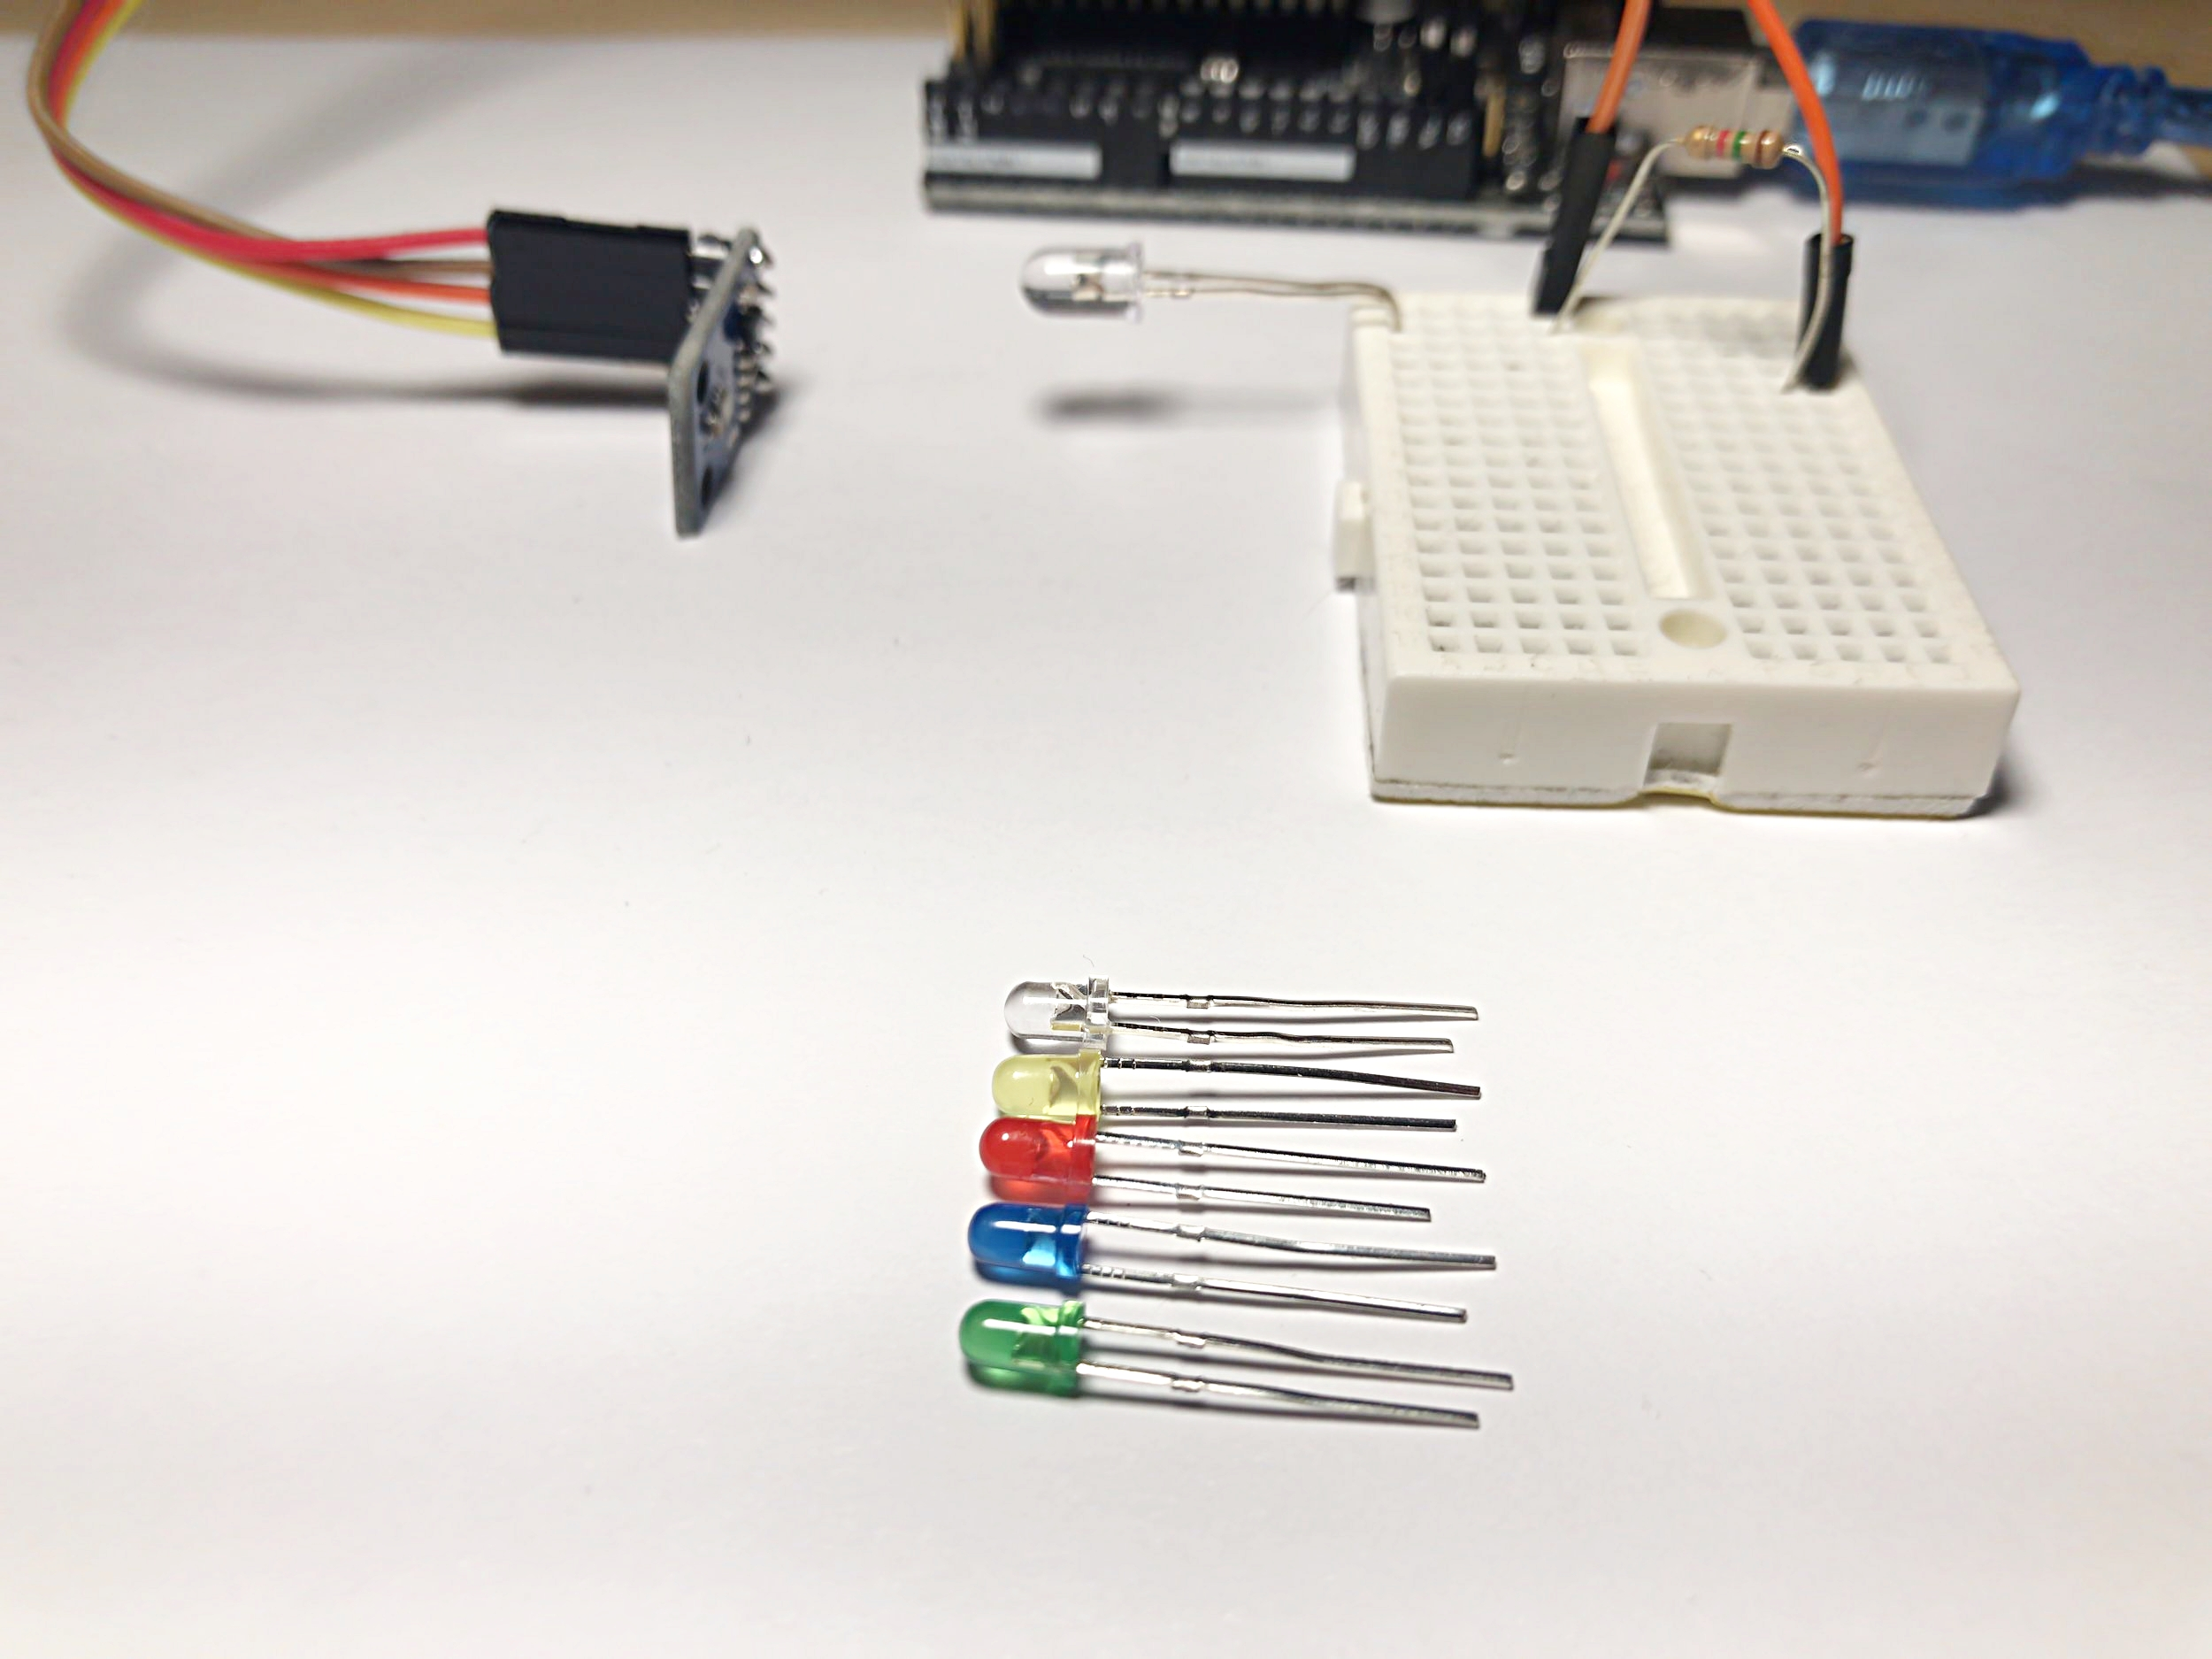 Figure 3:  Setup of experimental procedure where I measure the visible and infrared signals from each LED.